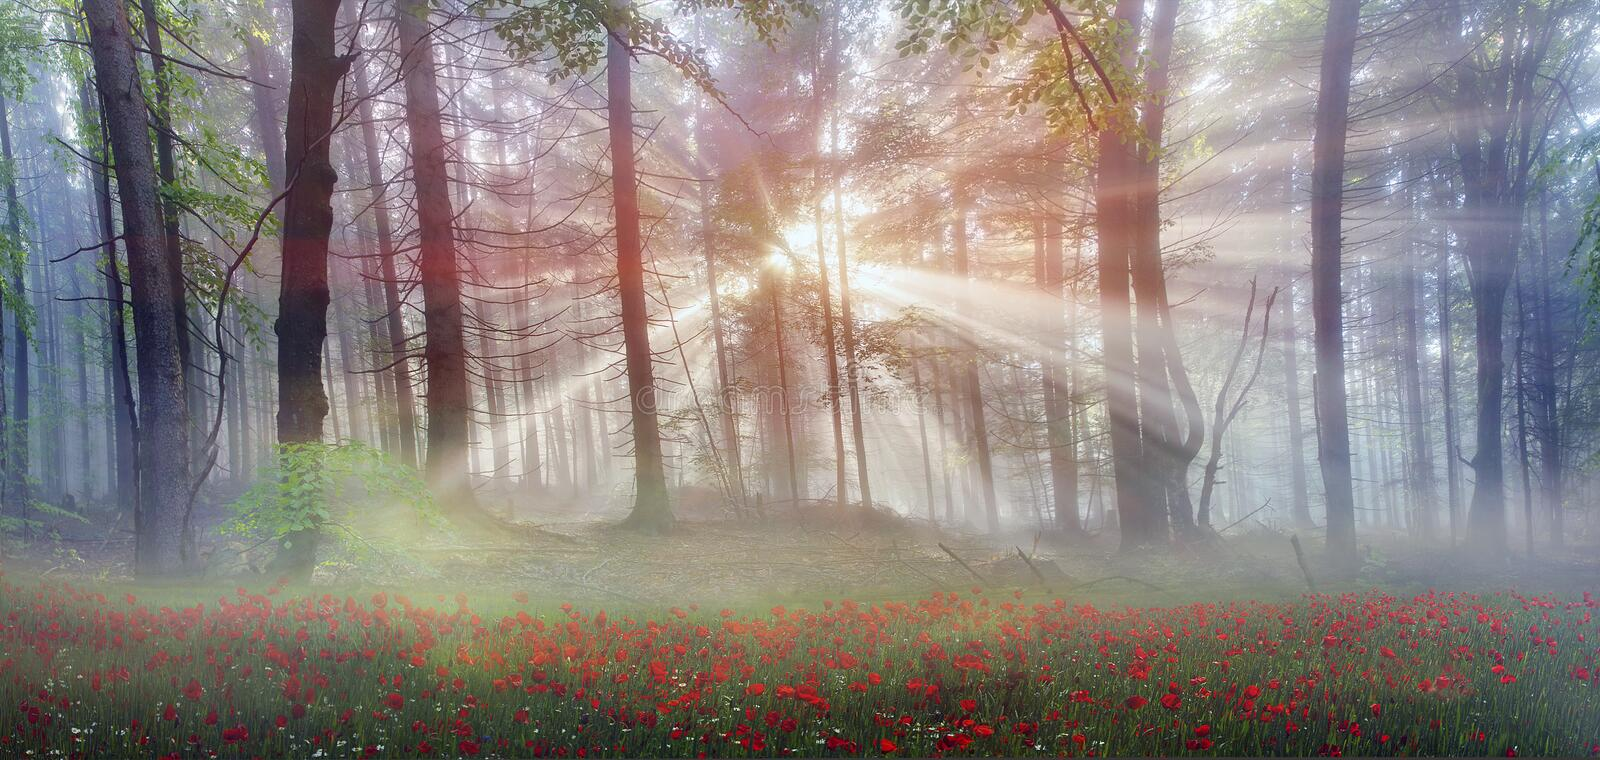 Magic Carpathian forest at dawn. Filled with the gentle rays of the sun in a misty morning haze. Alpine miracle available to anyone who at the dawn Take a walk royalty free stock photo